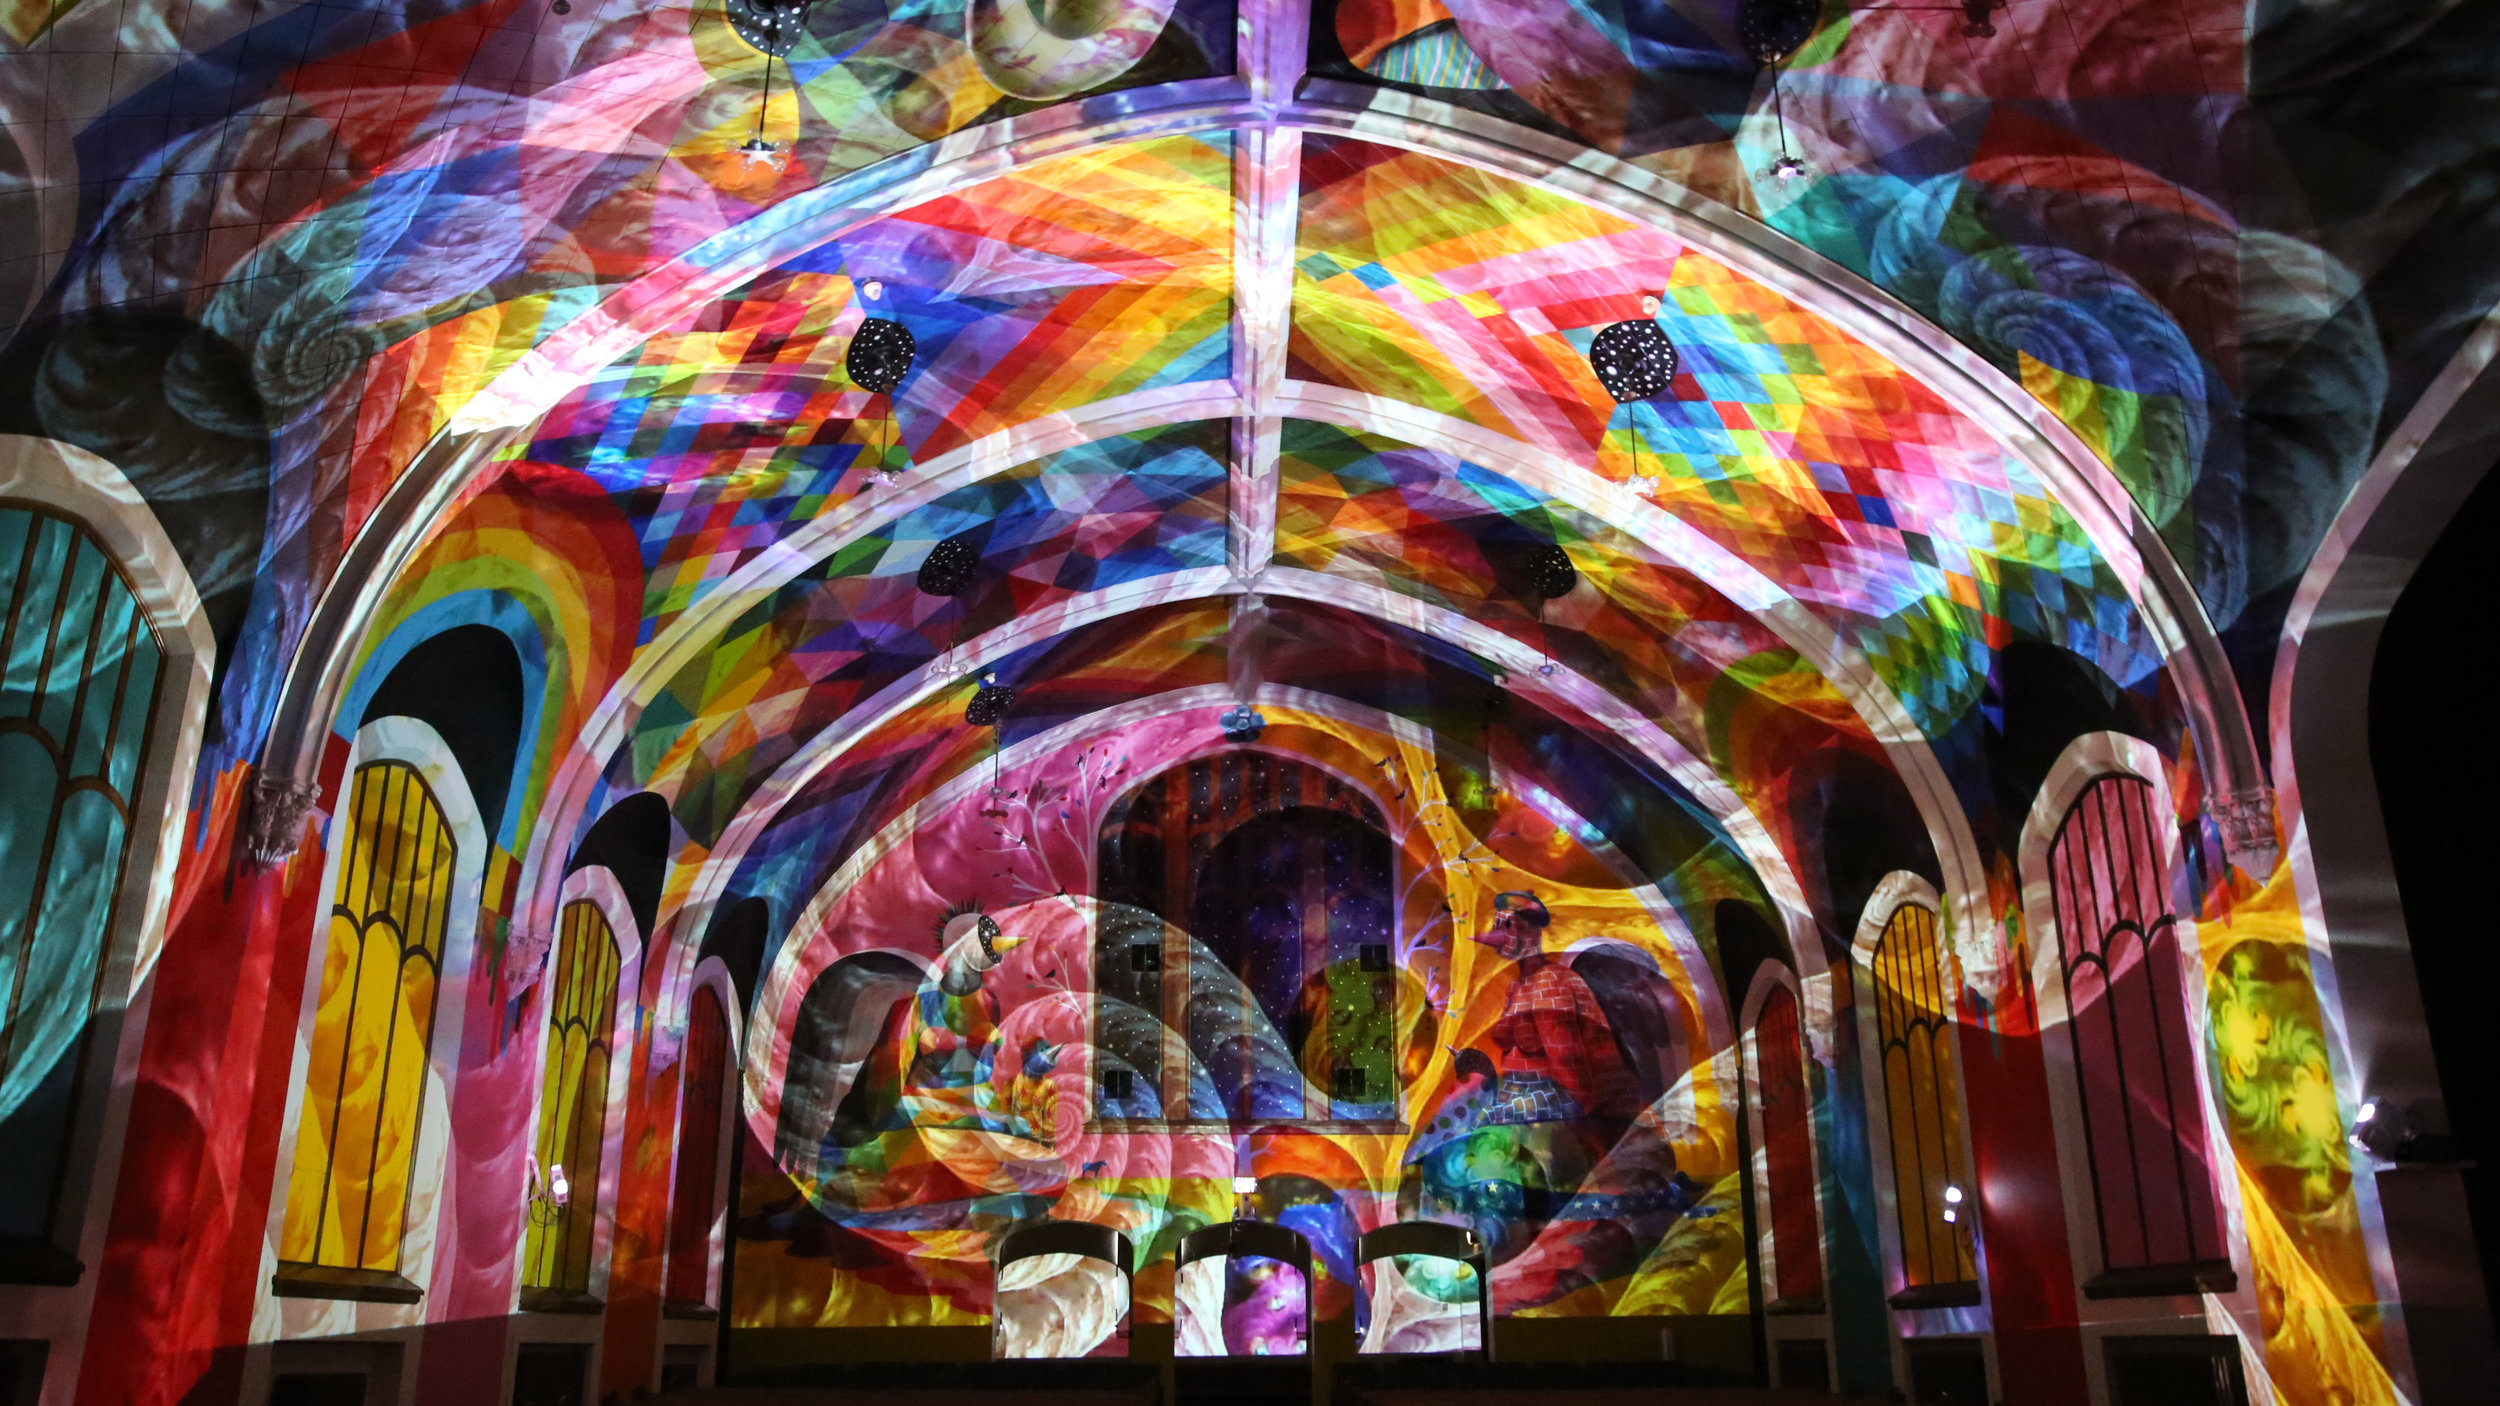 Light show image courtesy of the International Church of Cannabis